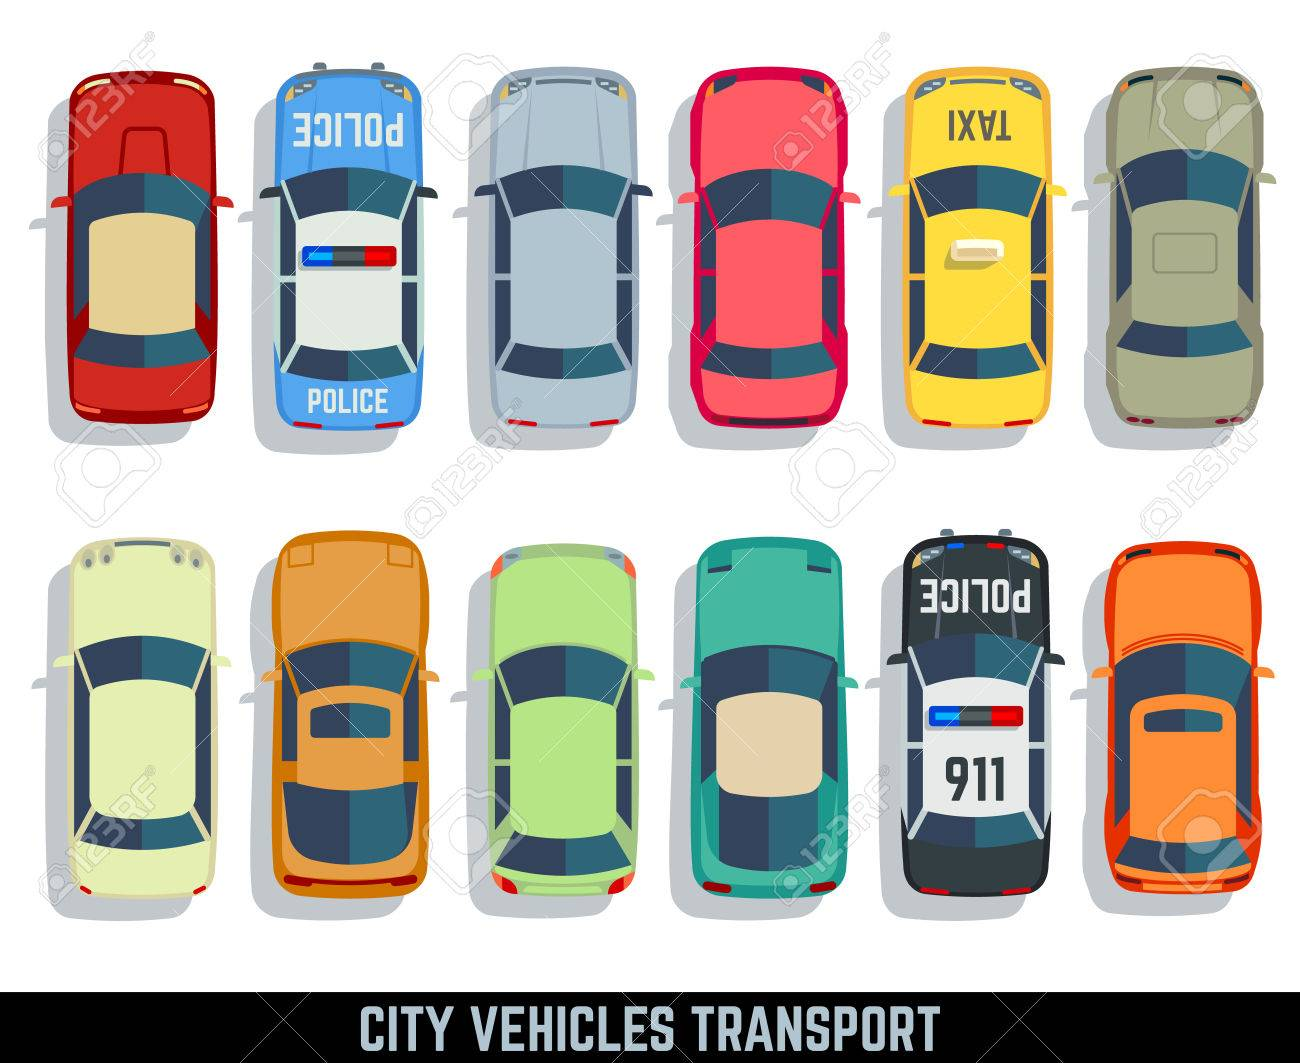 Cars top view vector flat city vehicle transport icons set. Automobile car for transportation, auto car icon illustration - 60003143